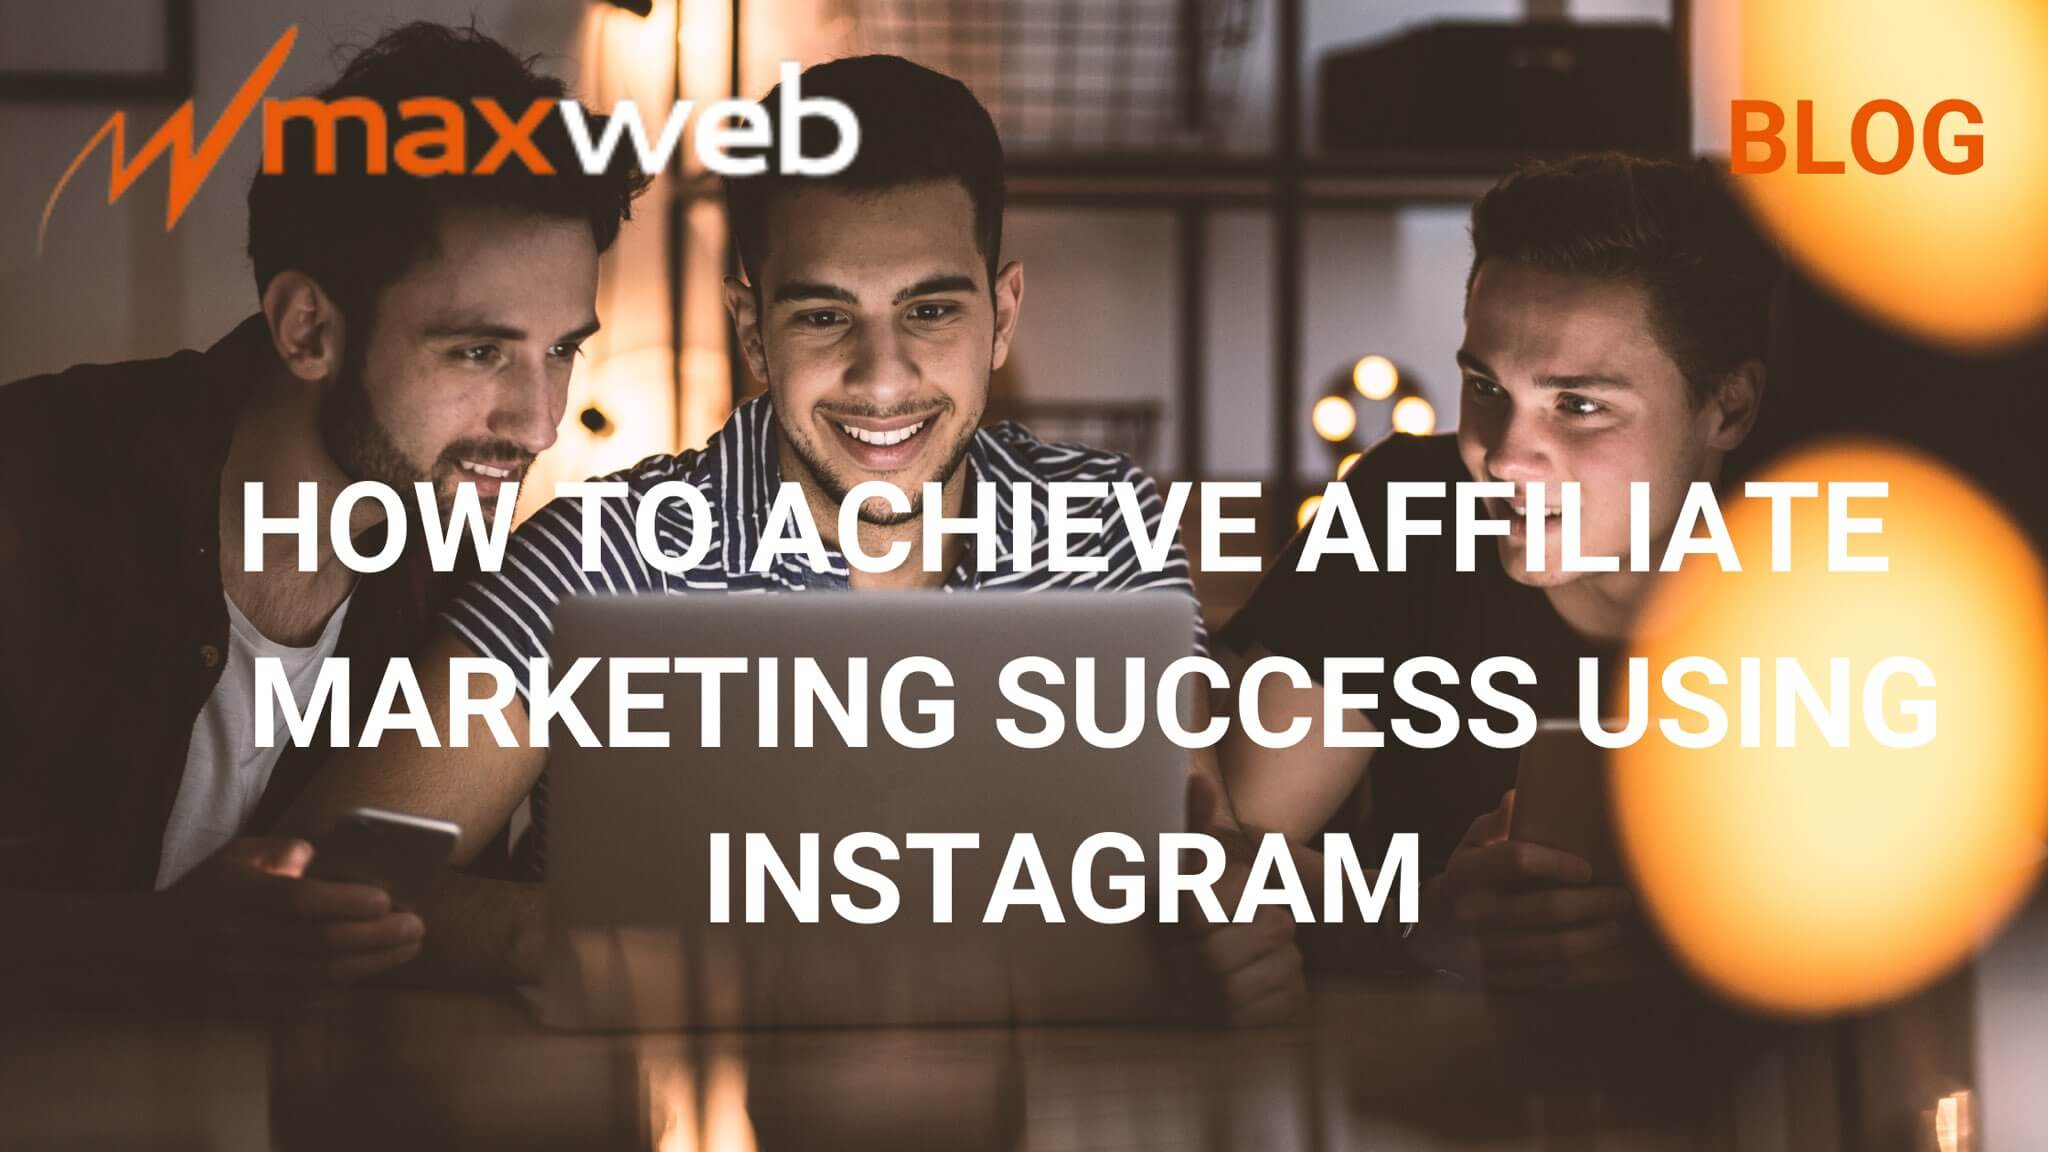 How to Achieve Affiliate Marketing Success Using Instagram